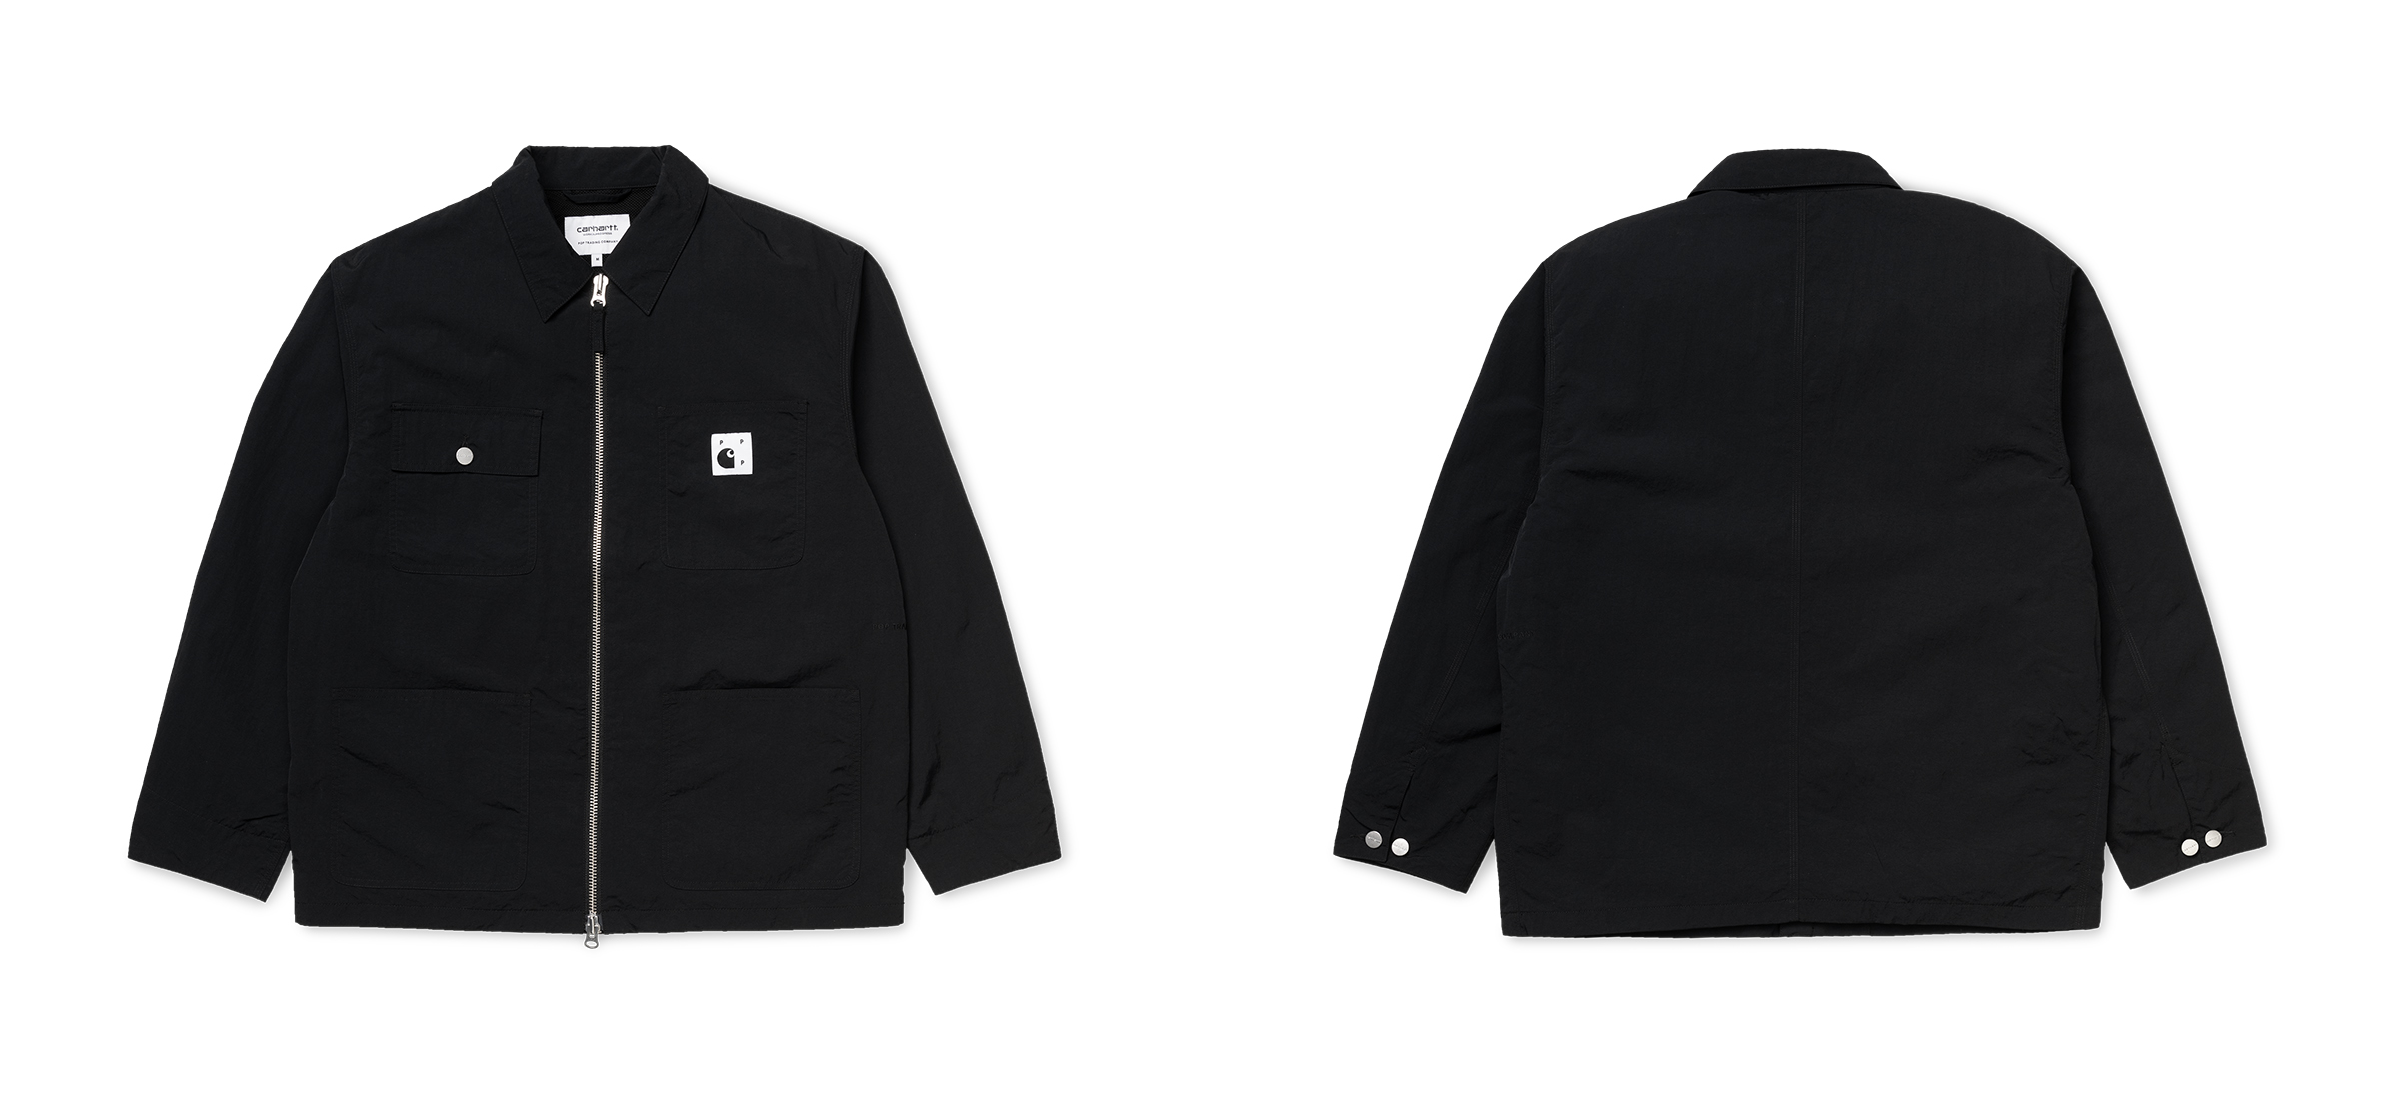 pop-trading-company-carhartt-wip-collab-product-1